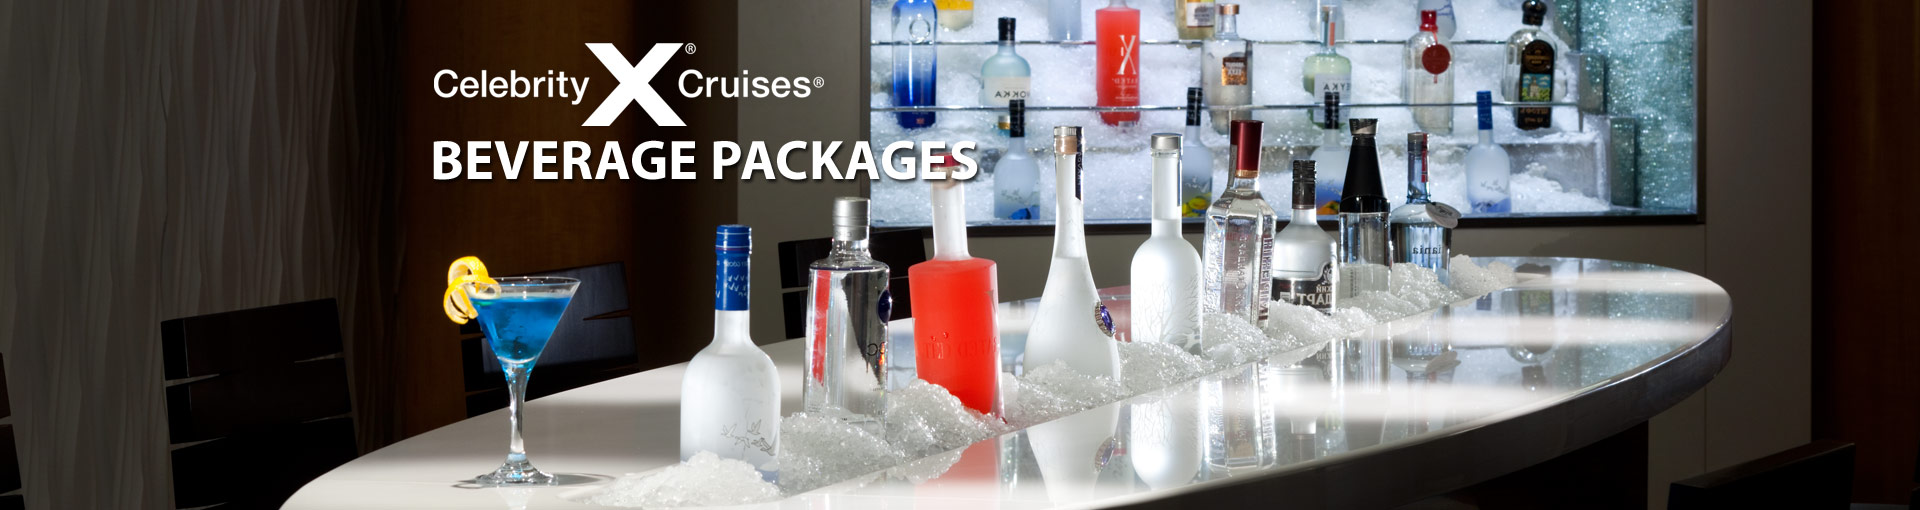 Celebrity Cruises Drink Packages